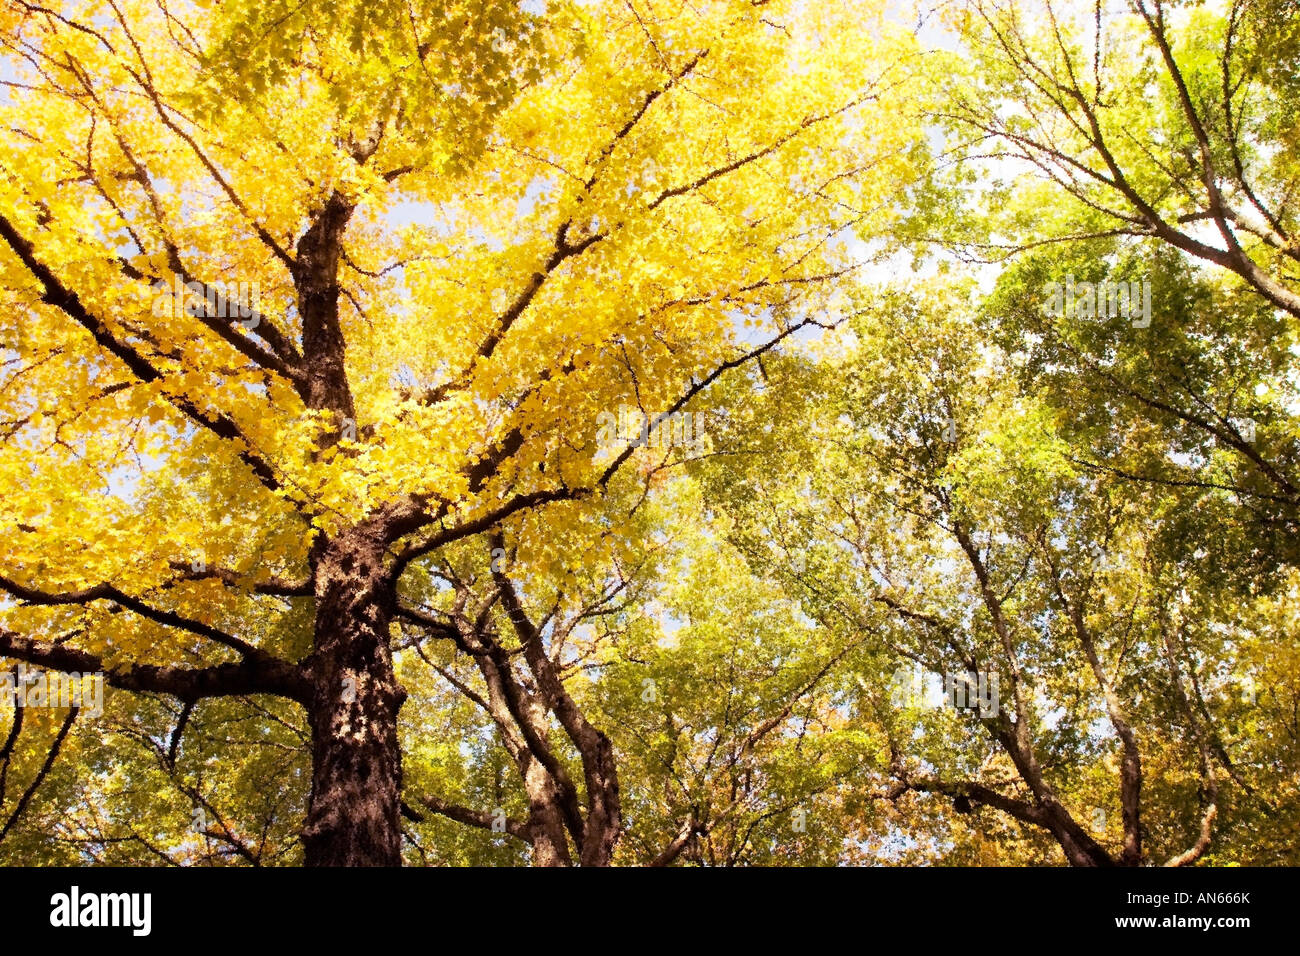 Trees with yellow and green leaves - Stock Image